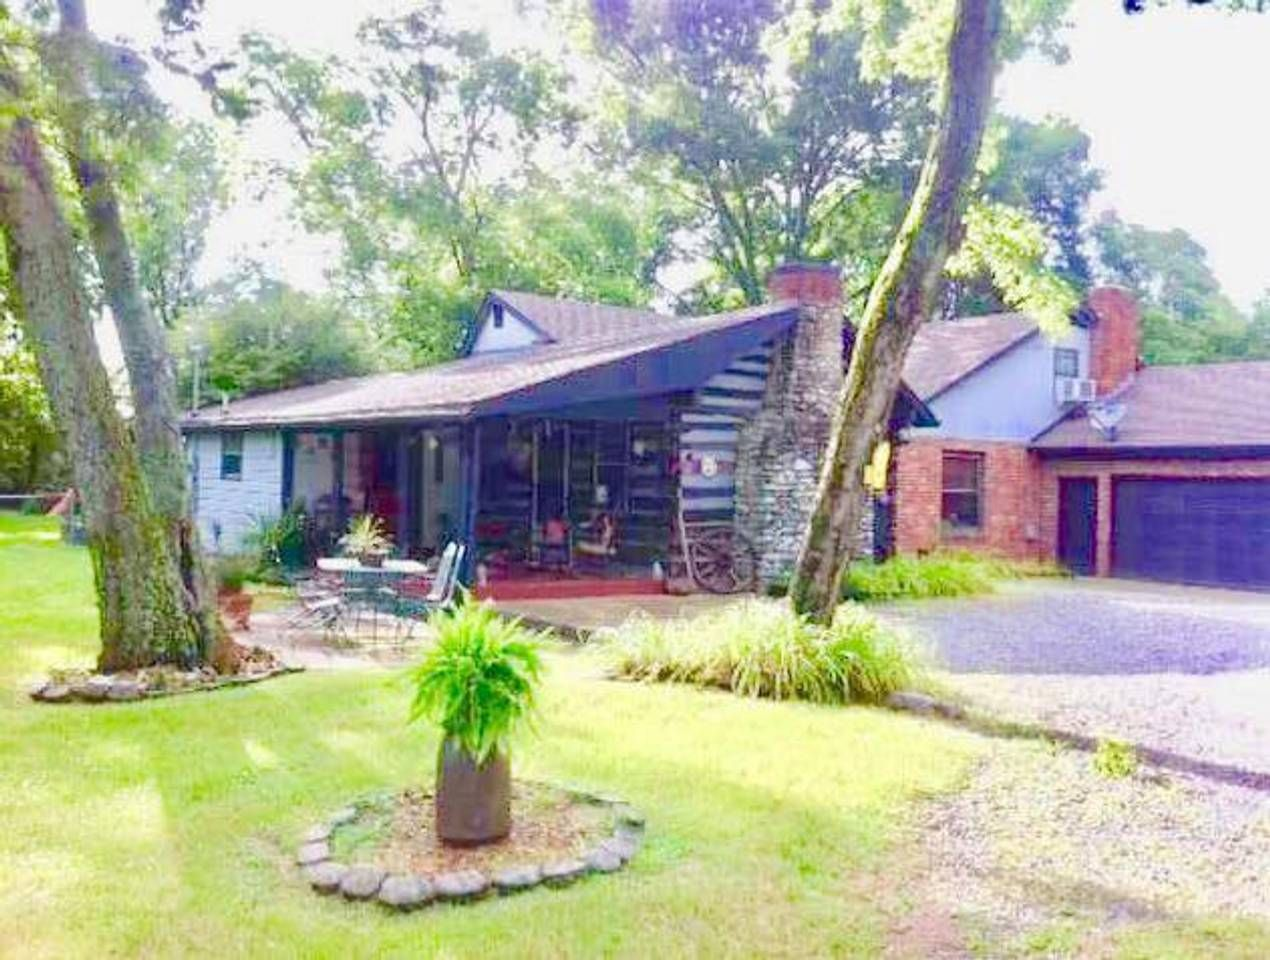 15 Mins From Downtown Nashvilled 150 Night 3 Bed 2 Baths Tennessee Vacation Nashville Cabin